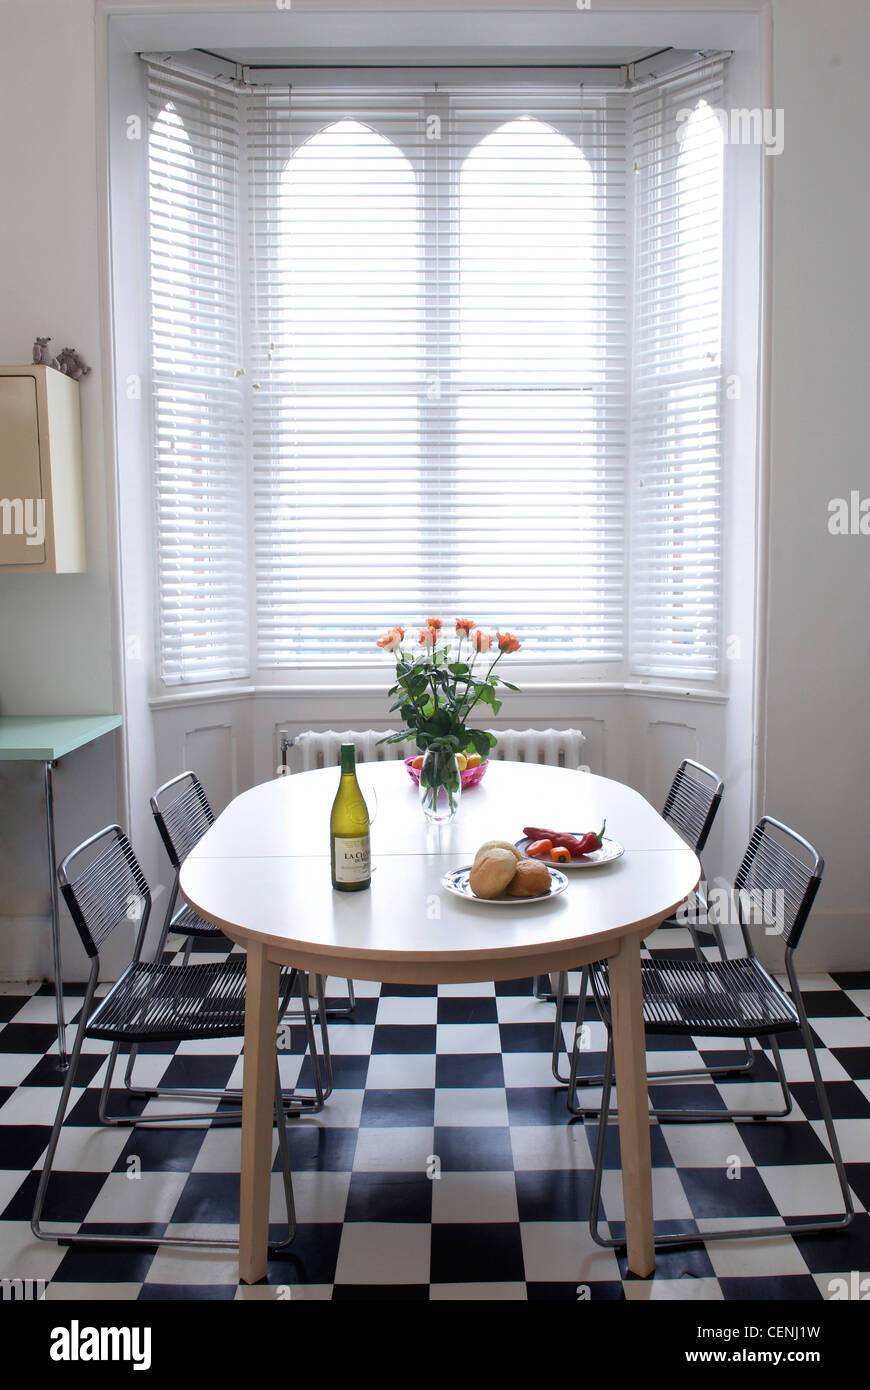 Brighton Interior Detail Image Of The Fifties Style Kitchen Oval Stock Photo Alamy